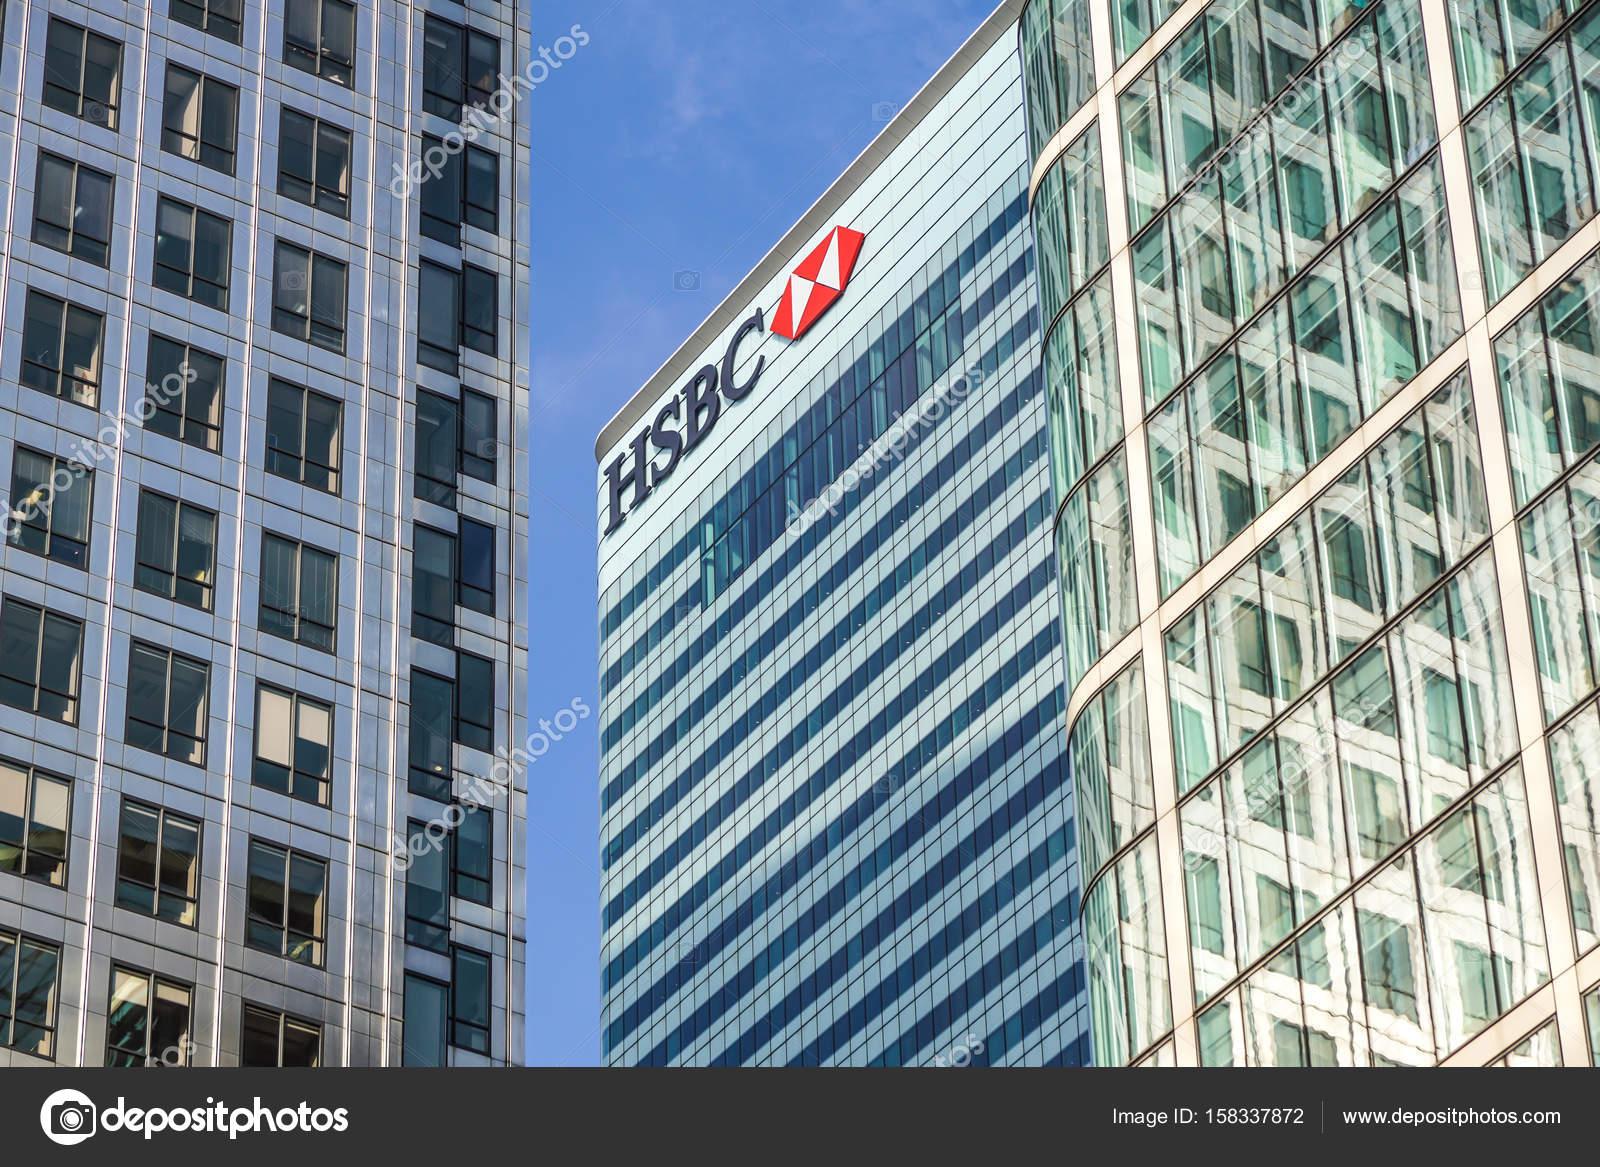 London, Uk - 6th April 2017: HSBC bank HQ in the city of London